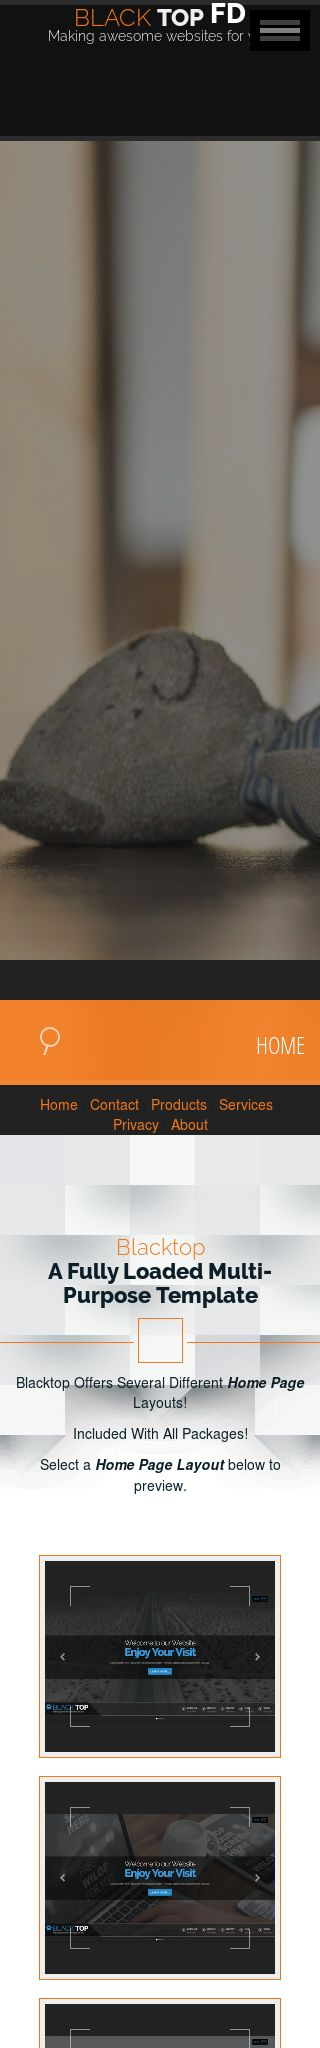 Mobile: Dogs Web Template